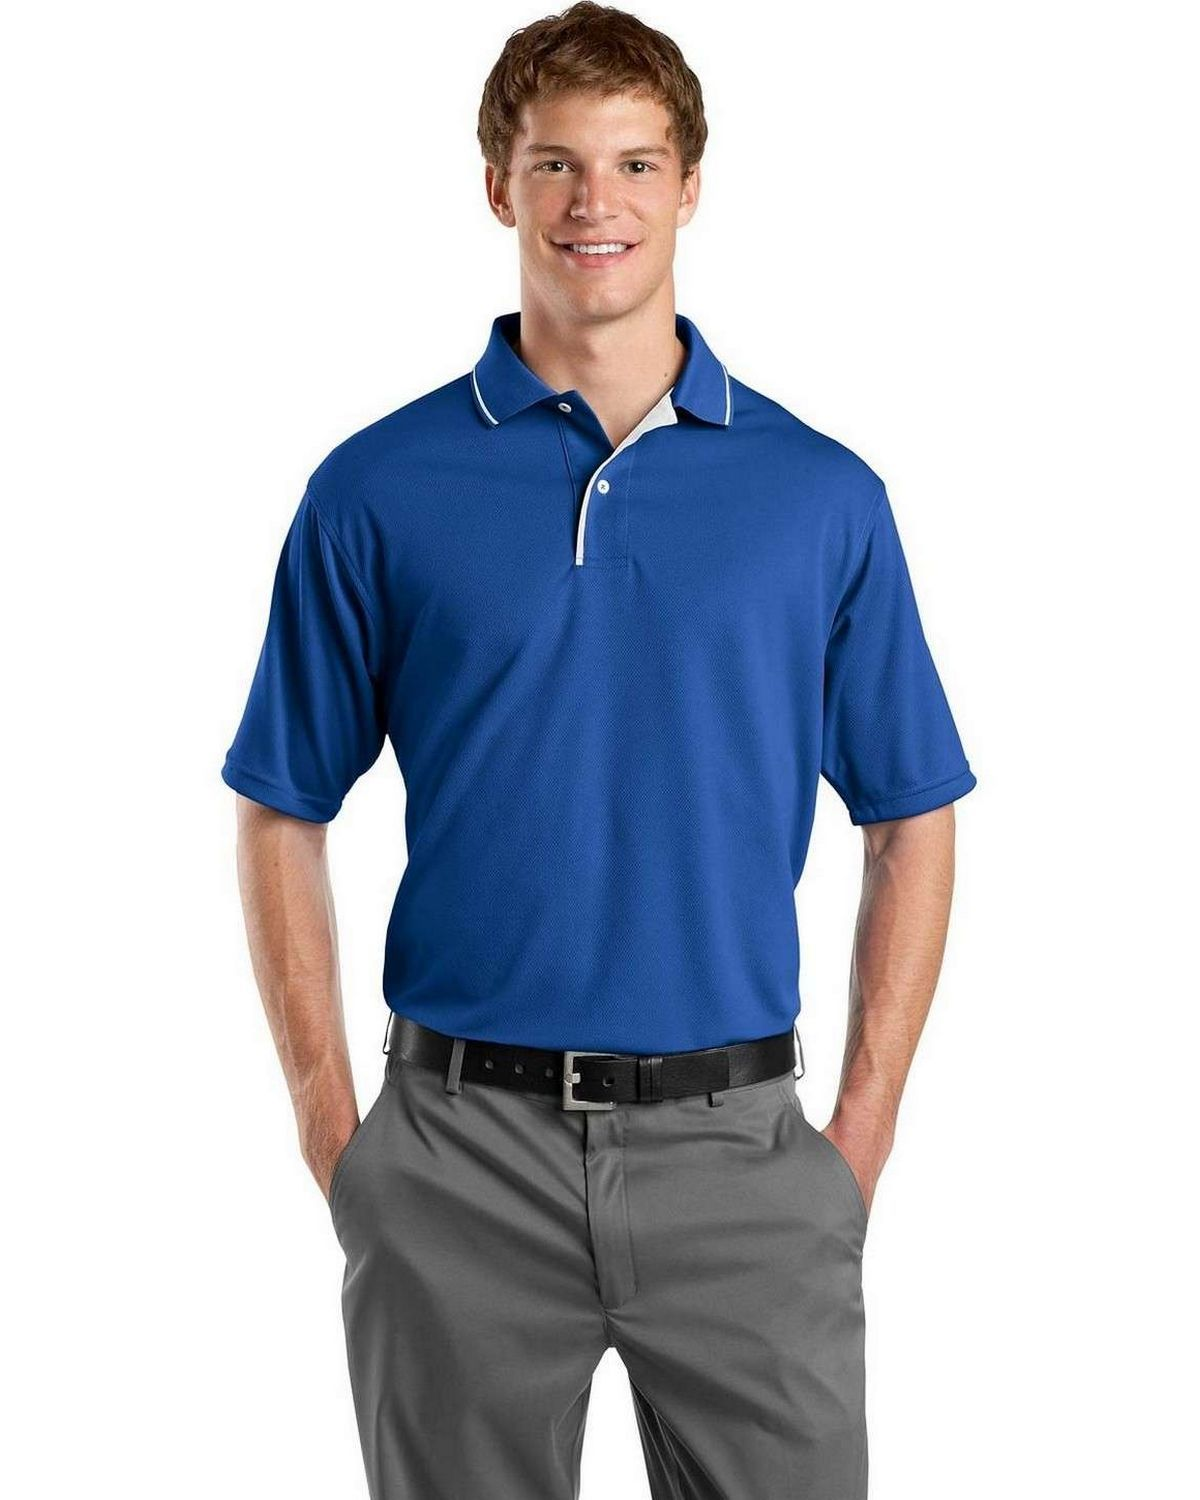 07138dc2c Sport-Tek K467 Dri-Mesh Polo with Tipped Collar and Piping   New ...